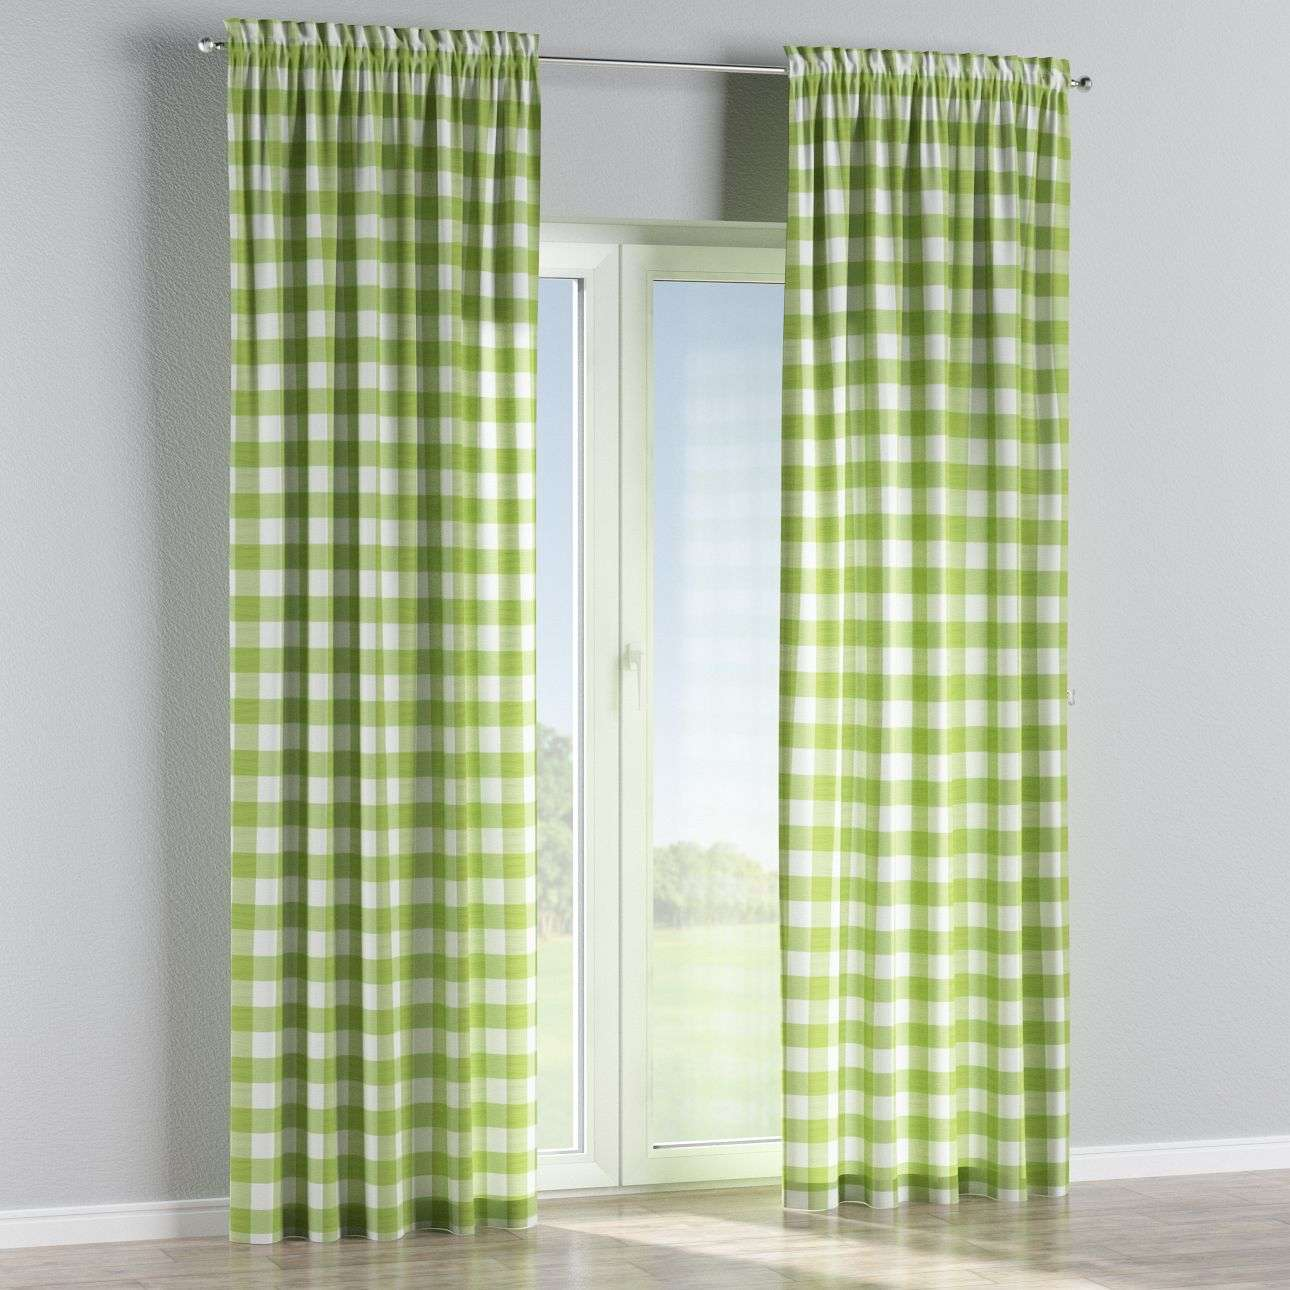 Slot and frill curtains 130 x 260 cm (51 x 102 inch) in collection Quadro, fabric: 136-36